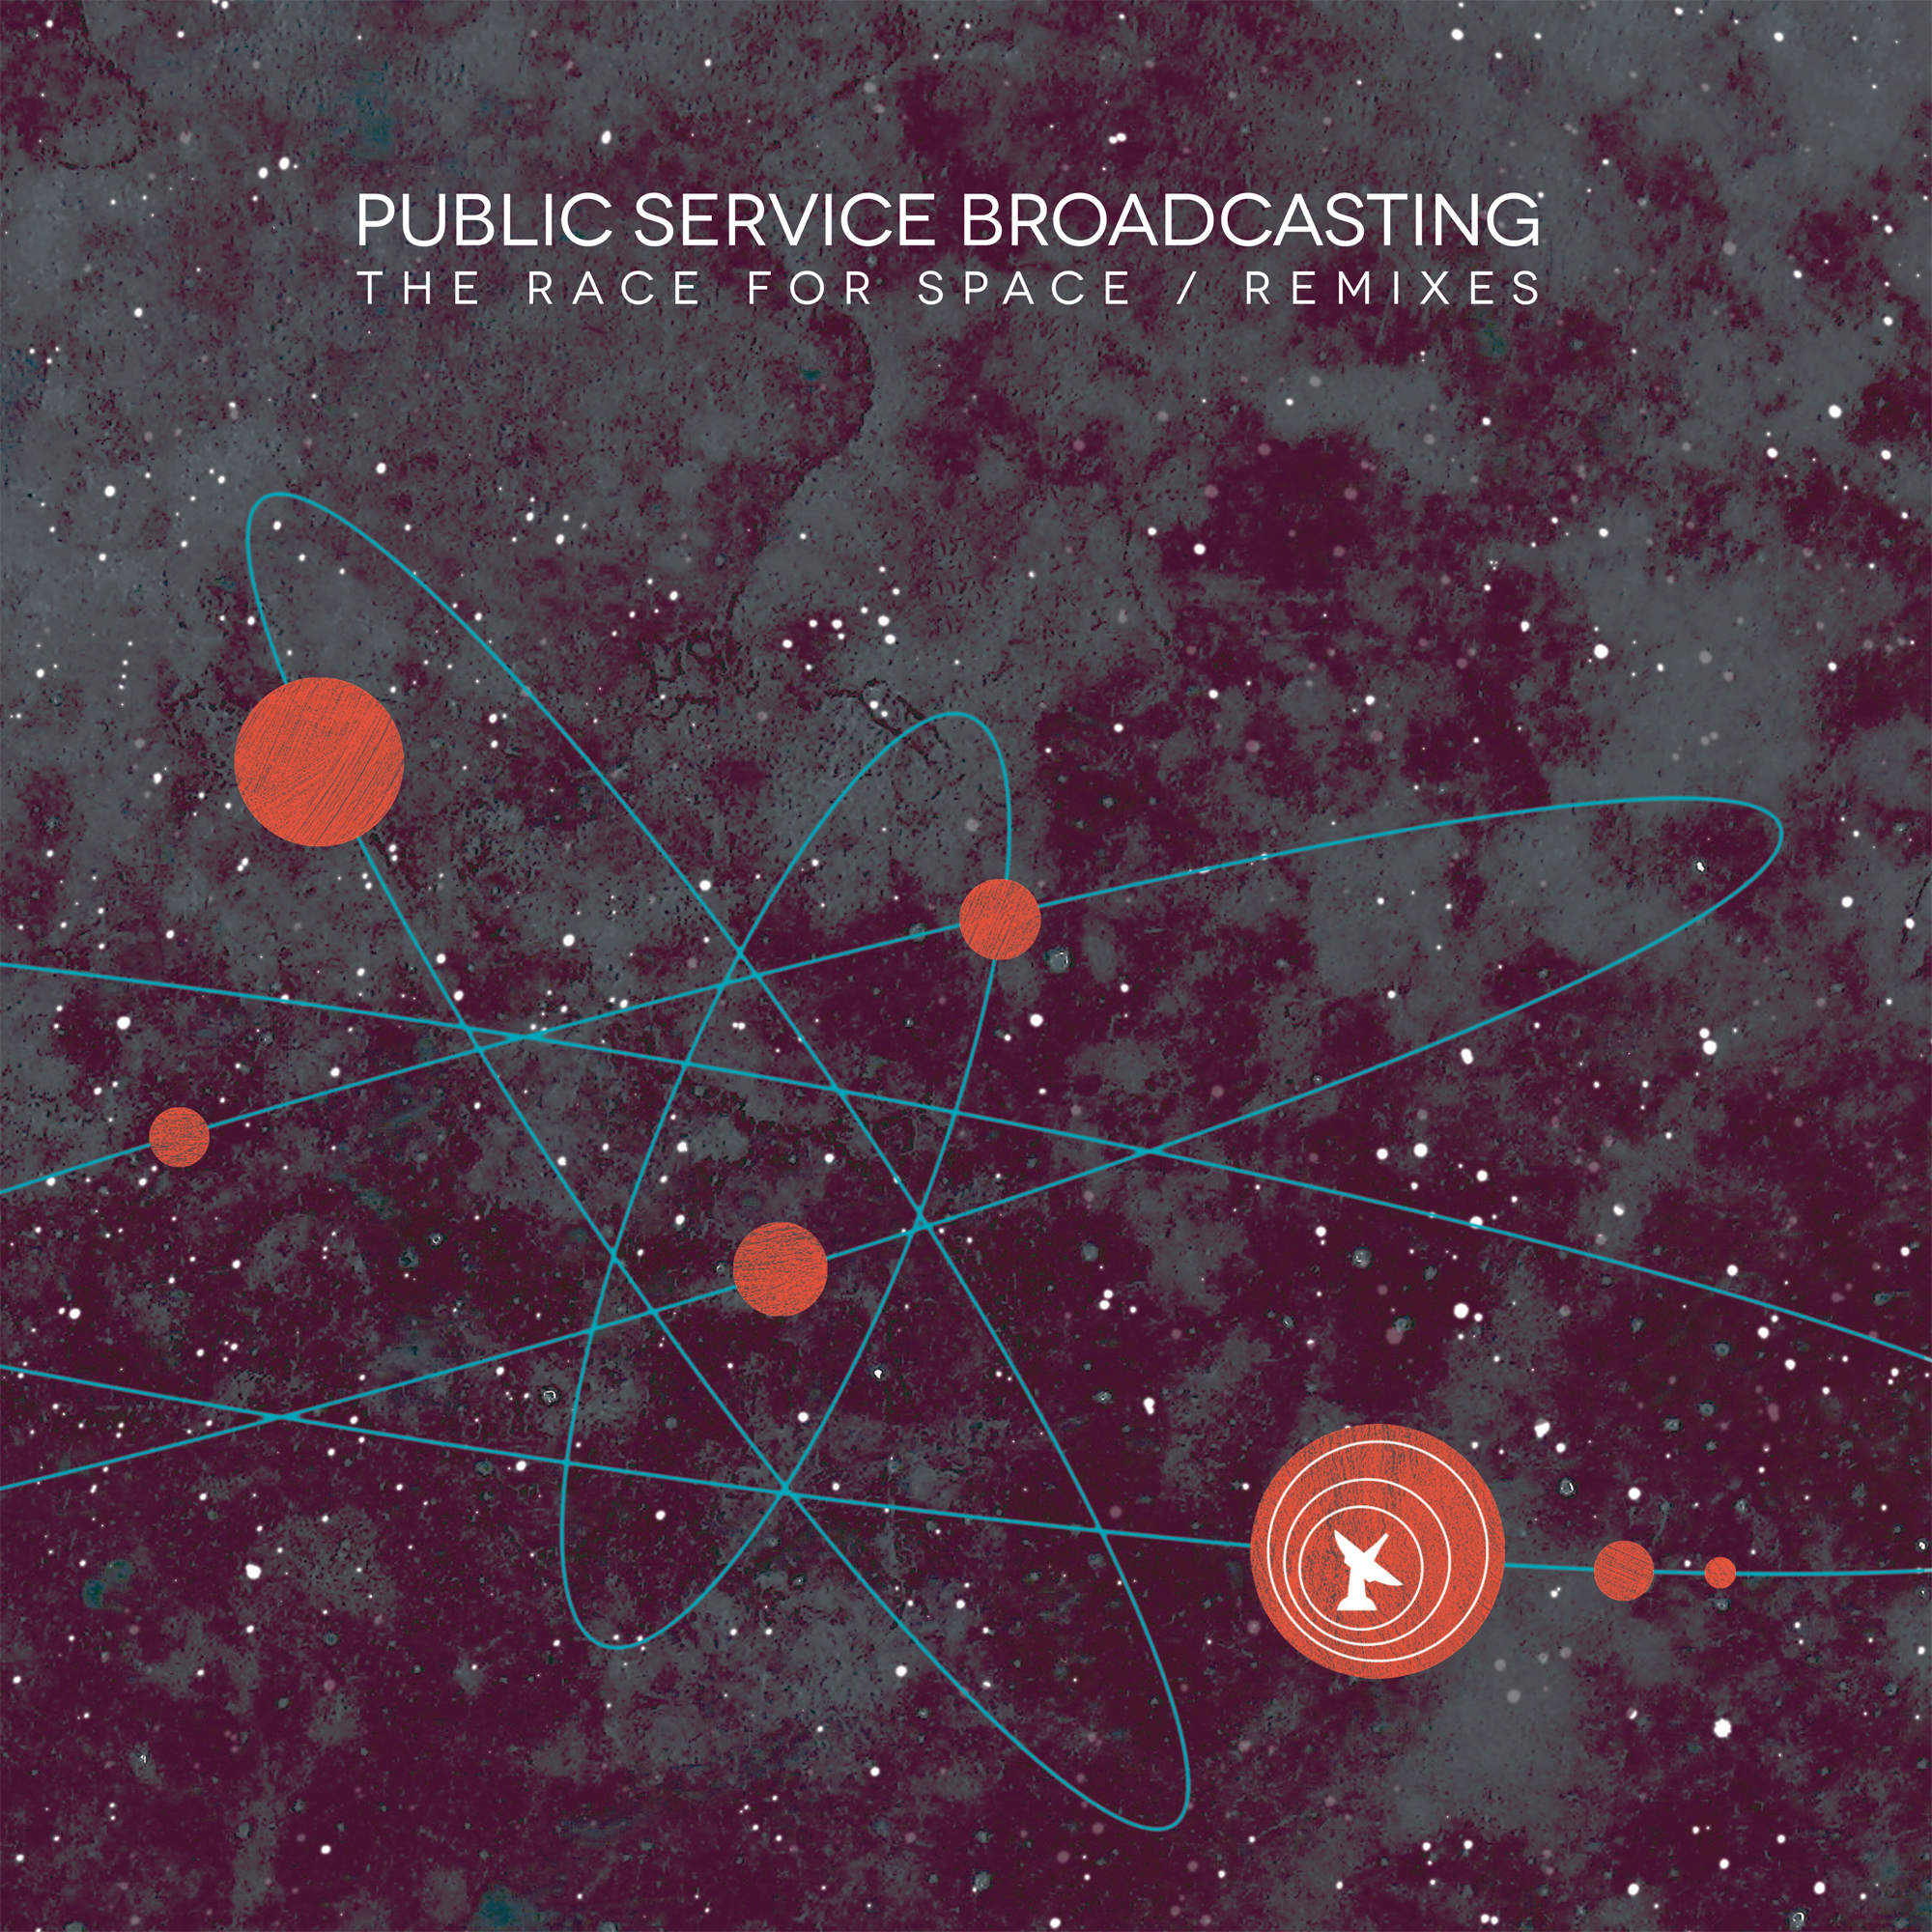 Public Service Broadcasting - The Race For Space Remixes